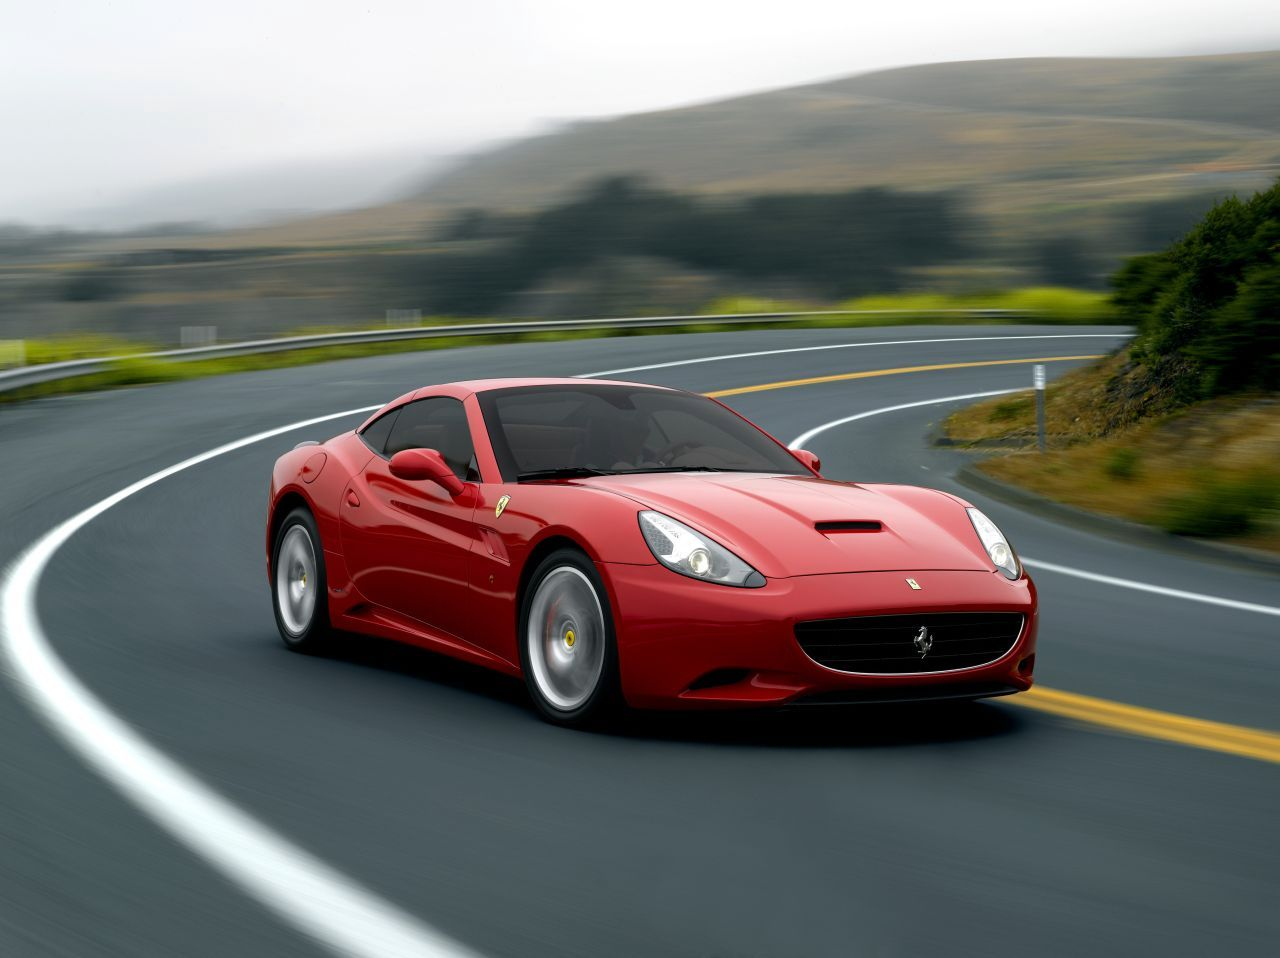 2009 Ferrari California #2